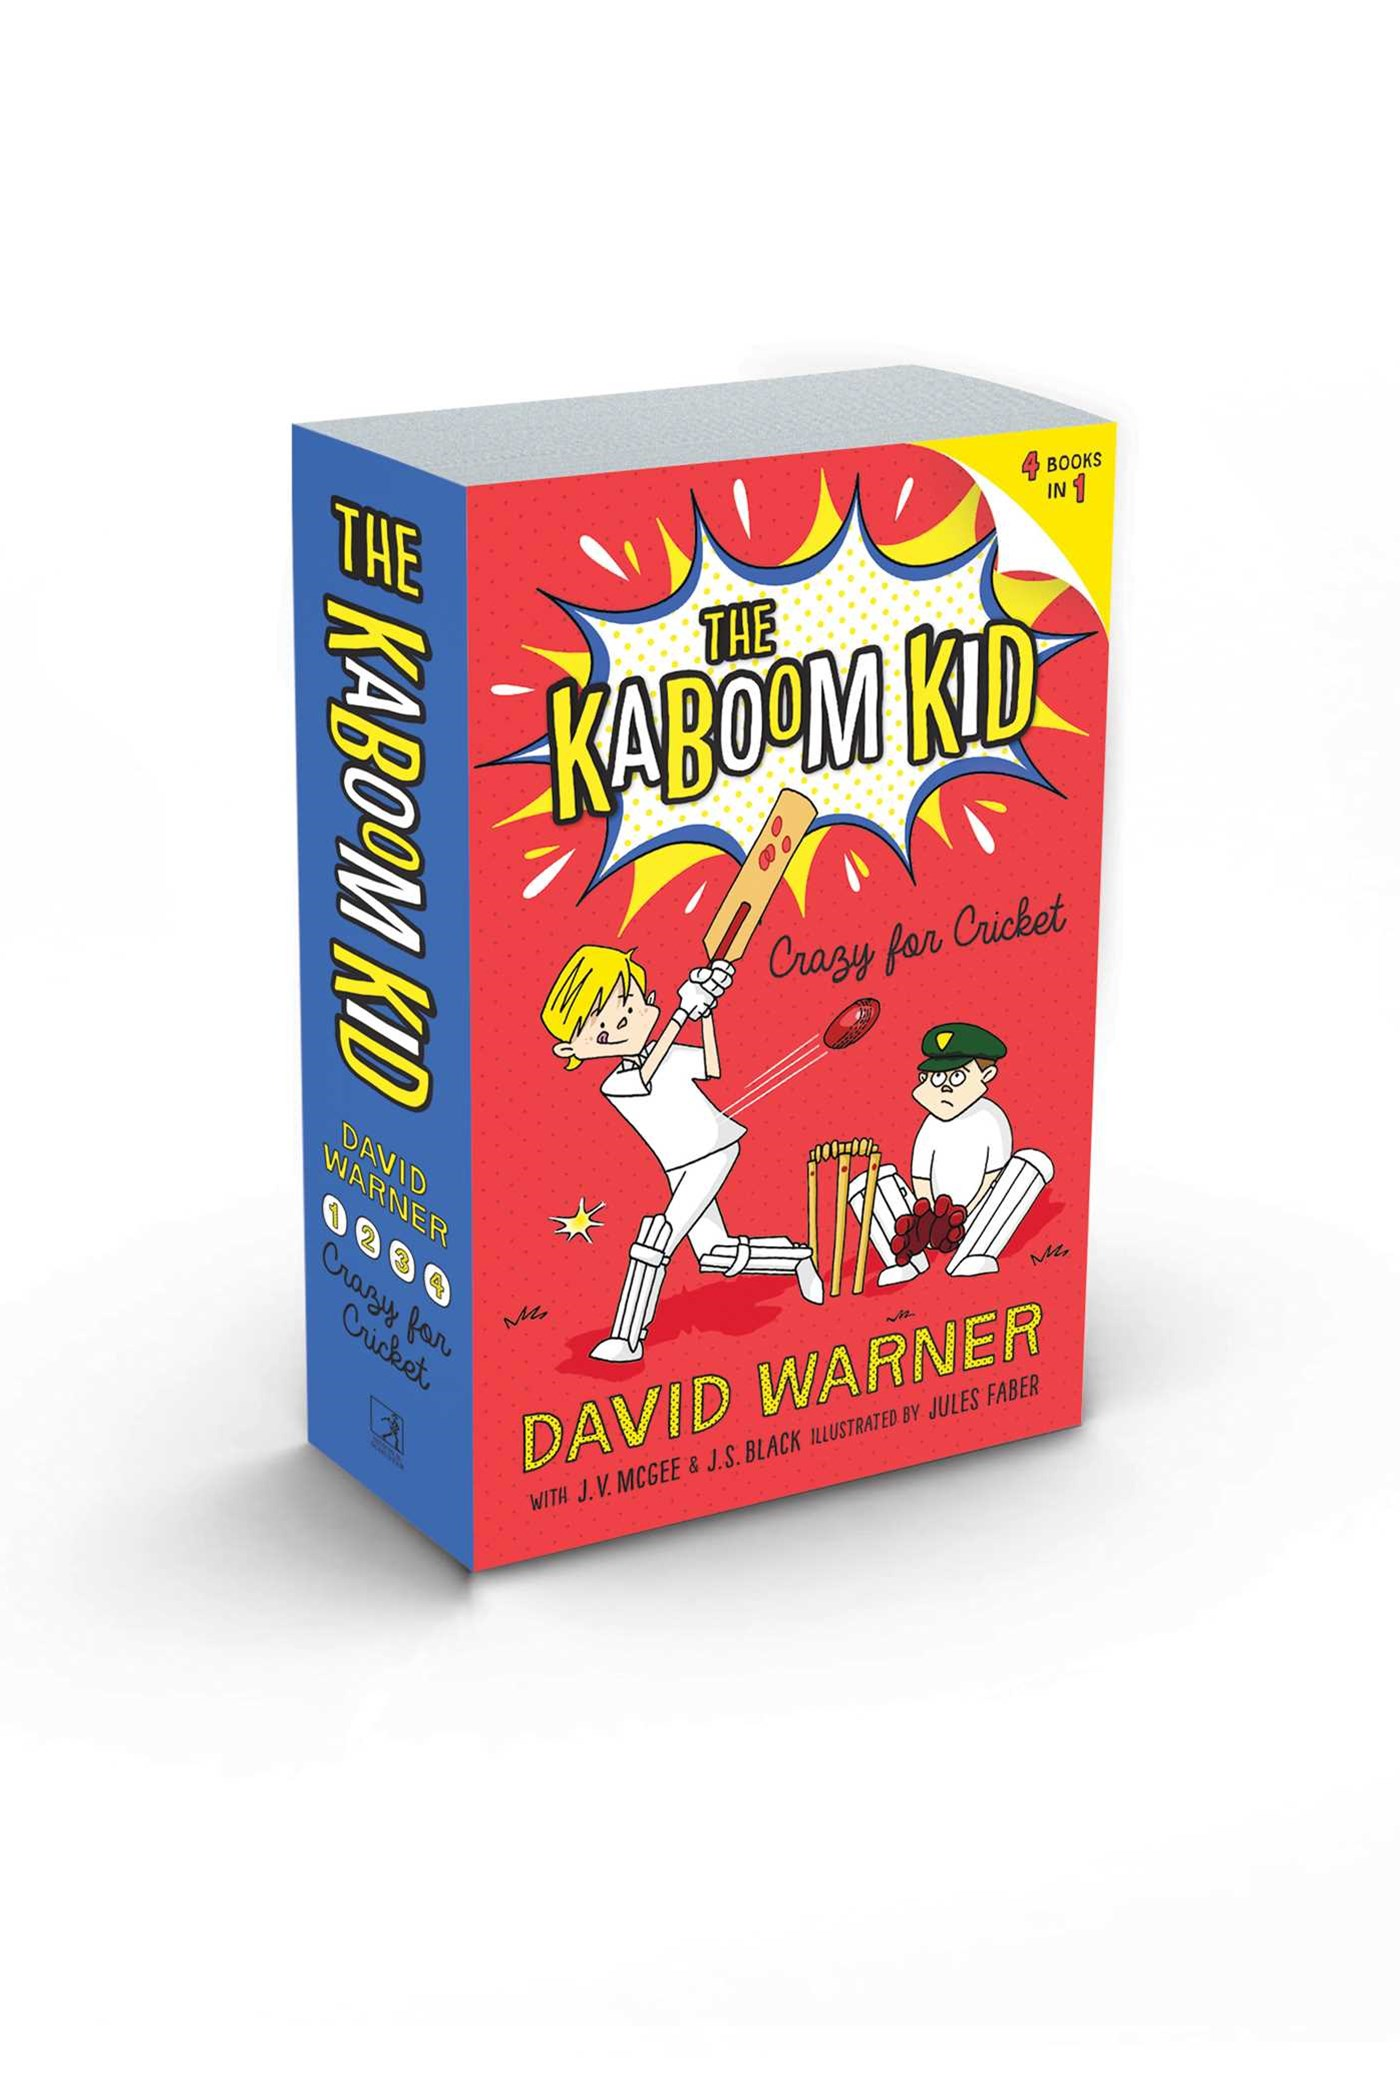 Crazy for Cricket: The Kaboom Kid Books 1-4